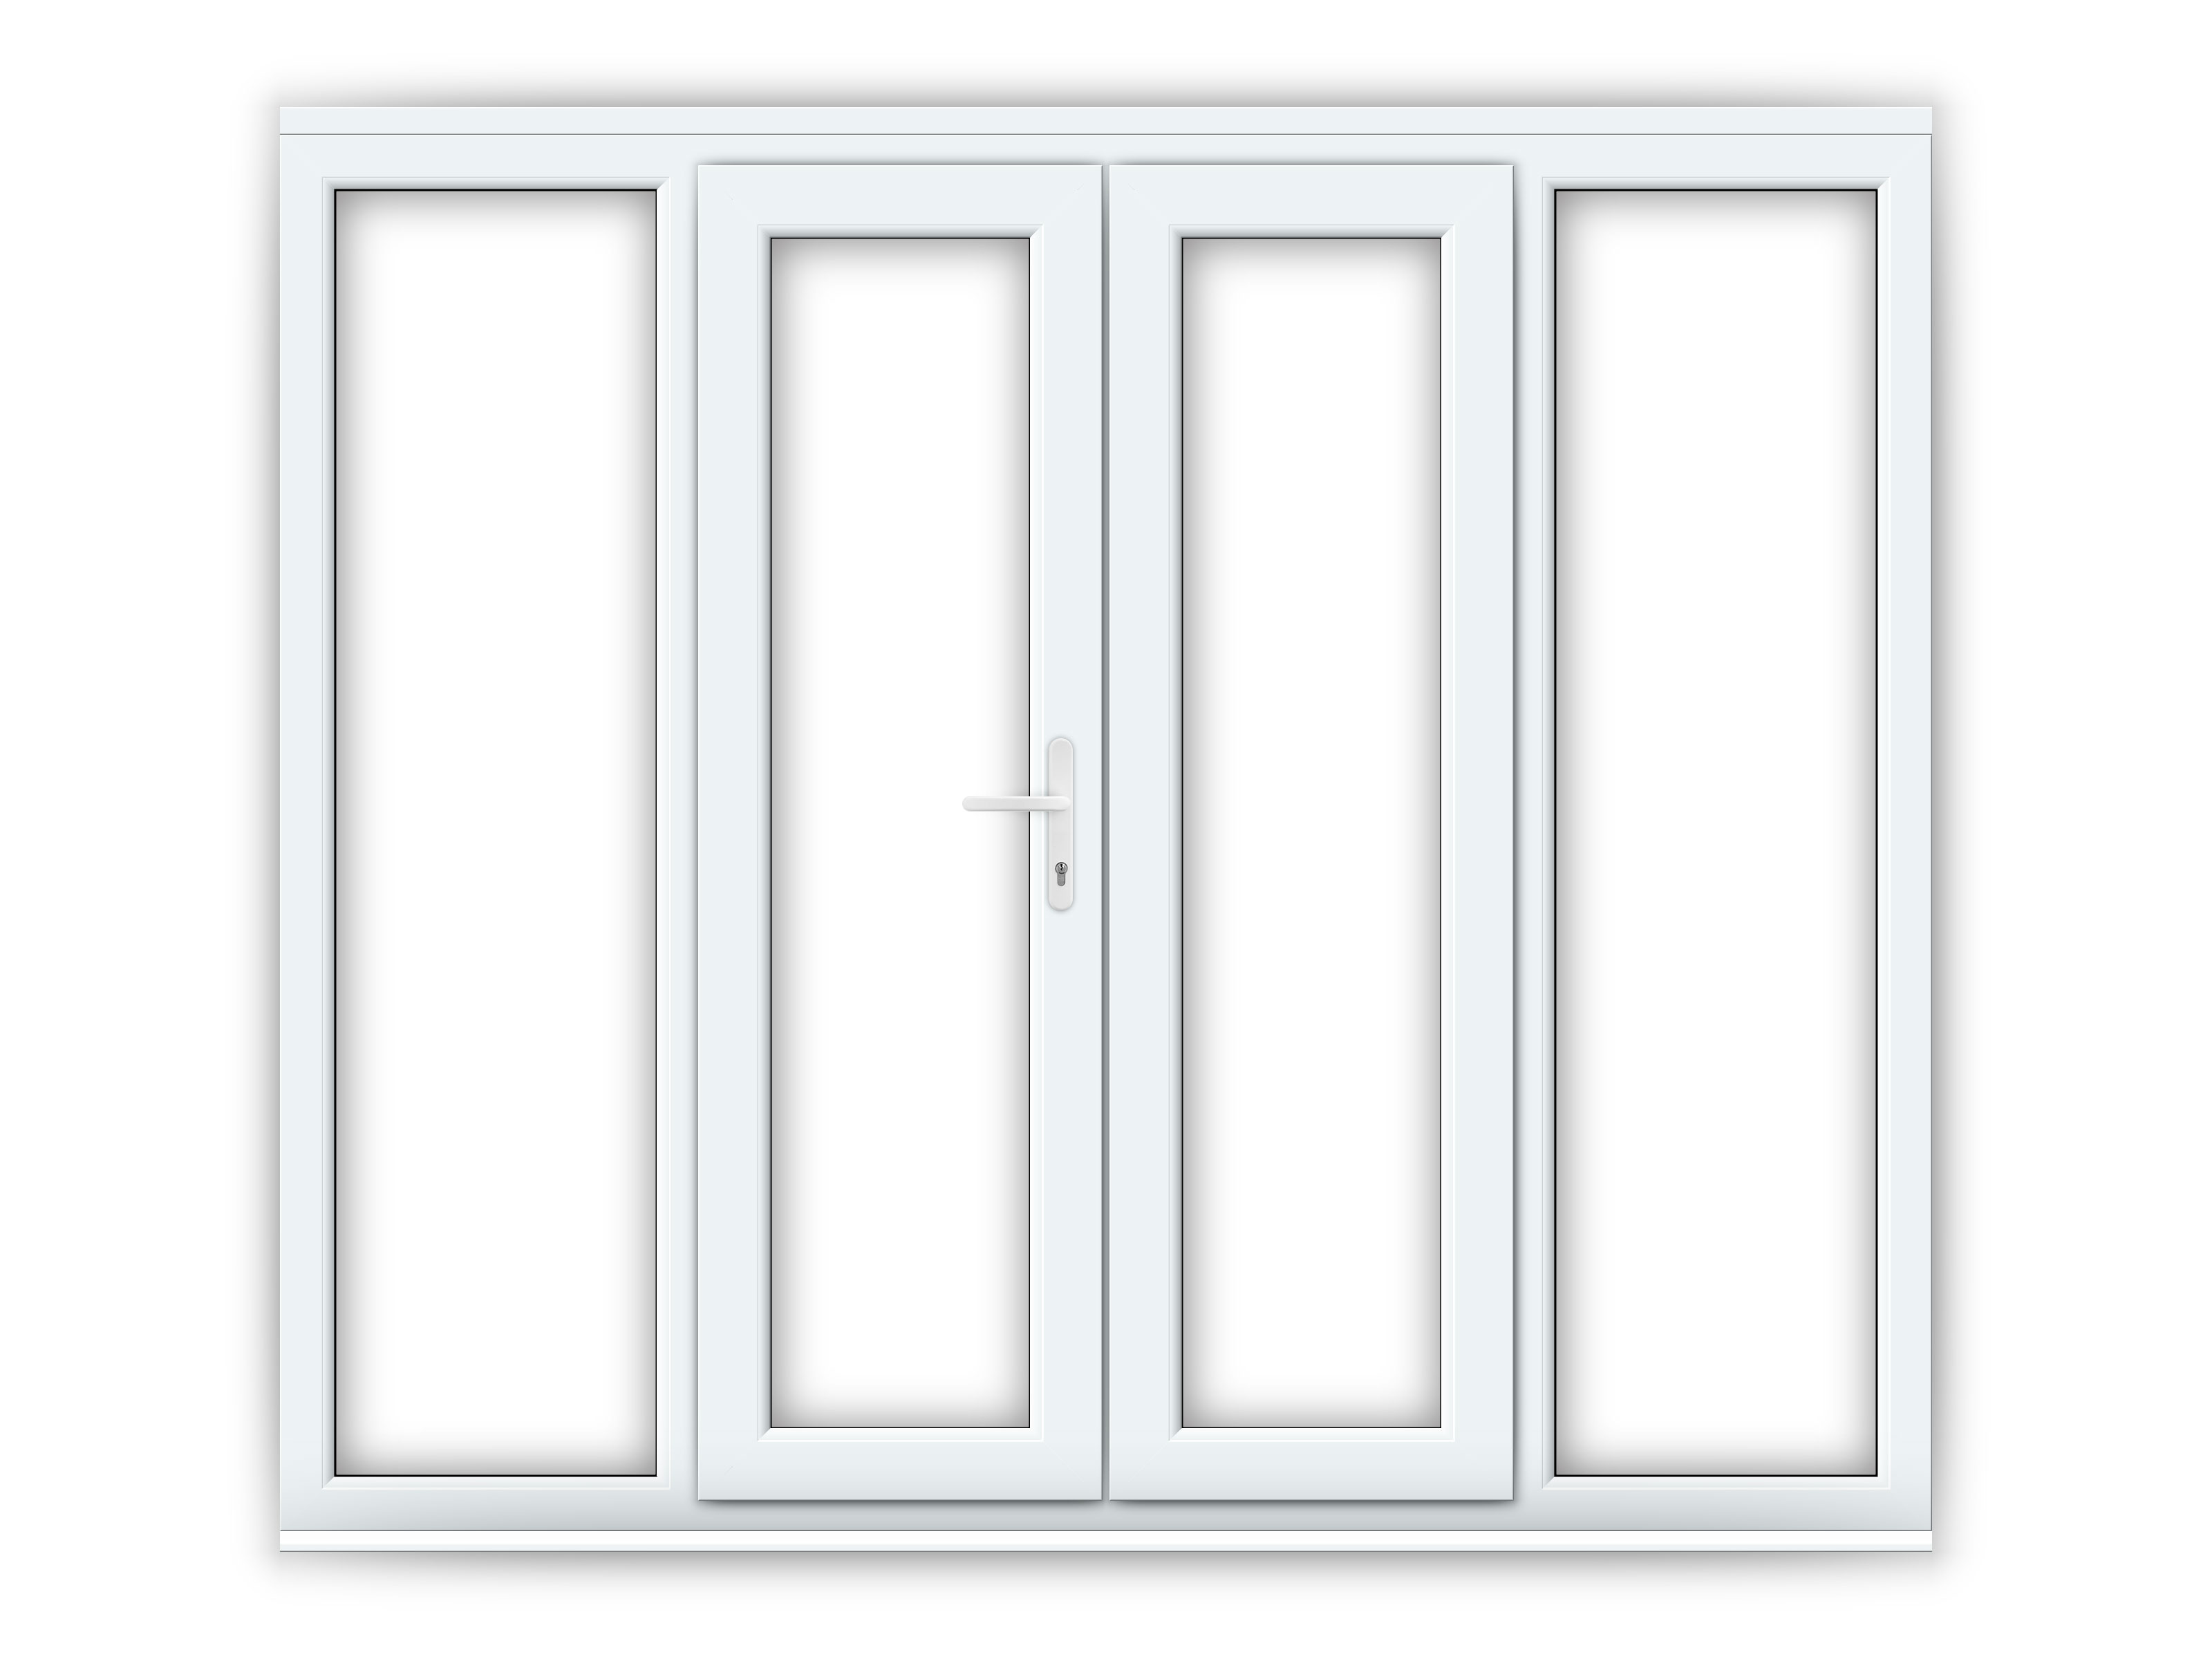 4ft upvc french doors with 2 wide upvc side panels for 5 foot wide french patio doors